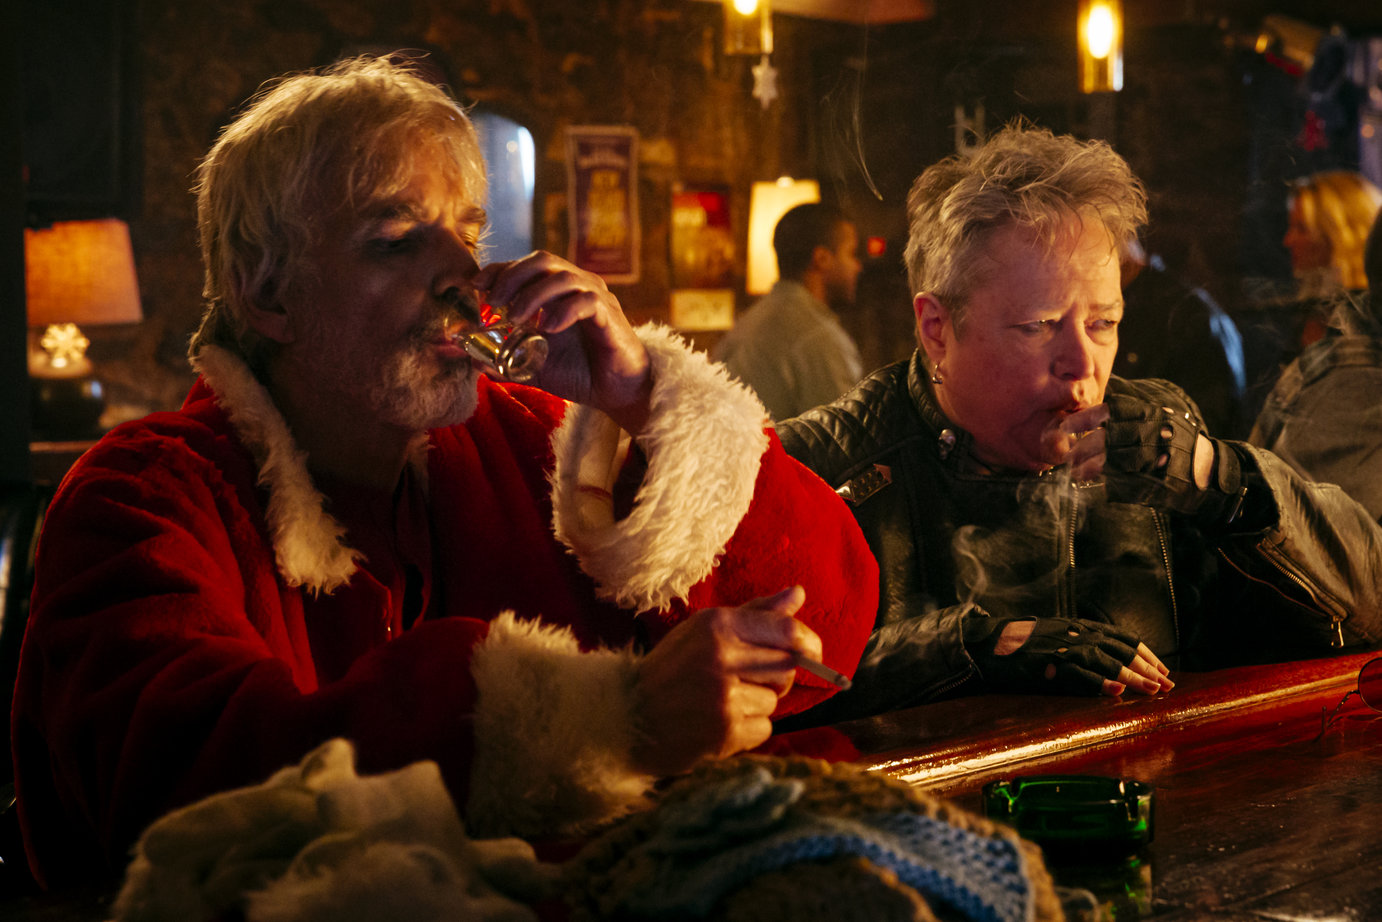 Kathy Bates, Billy Bob Thornton and Mark Waters get mean again in 'Bad Santa 2'